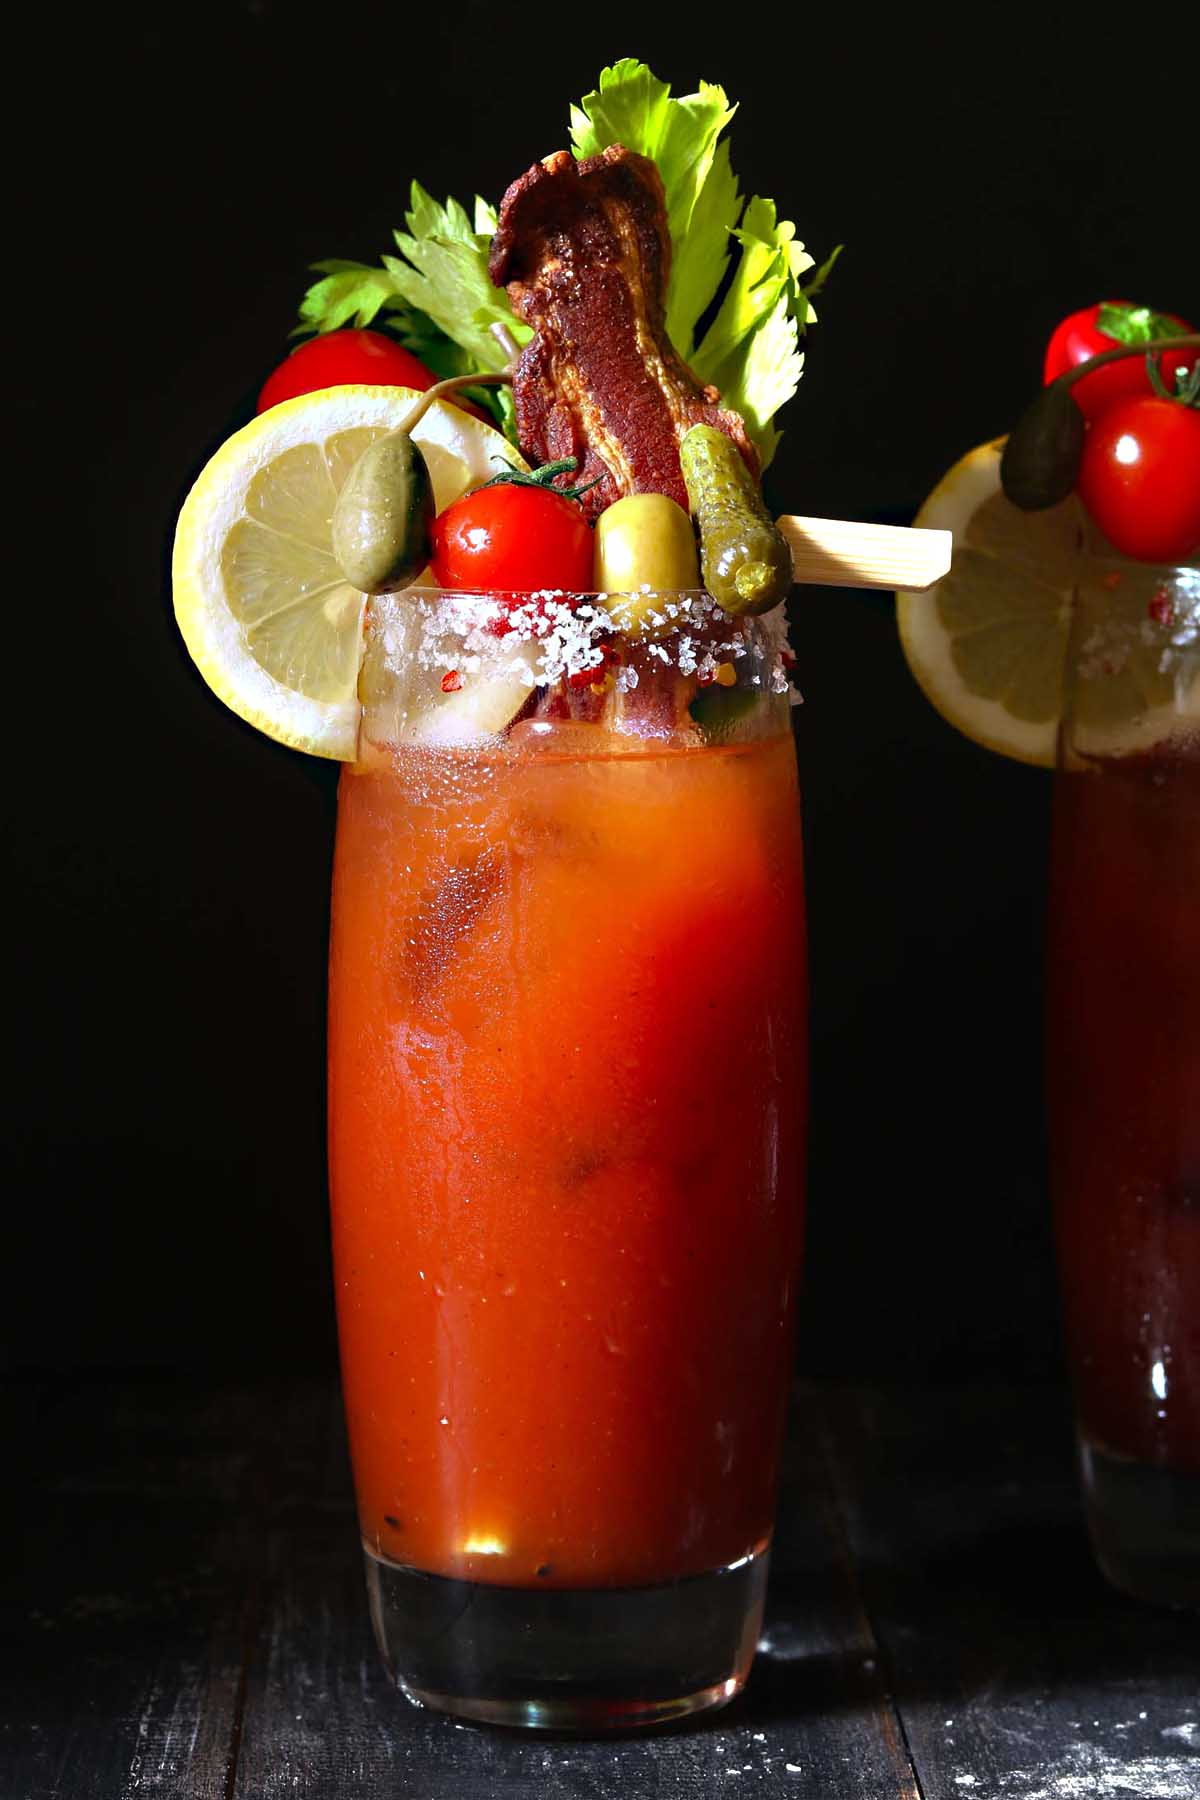 Bloody mary drink with lemon, celery, olives, cornichons and caper berries.